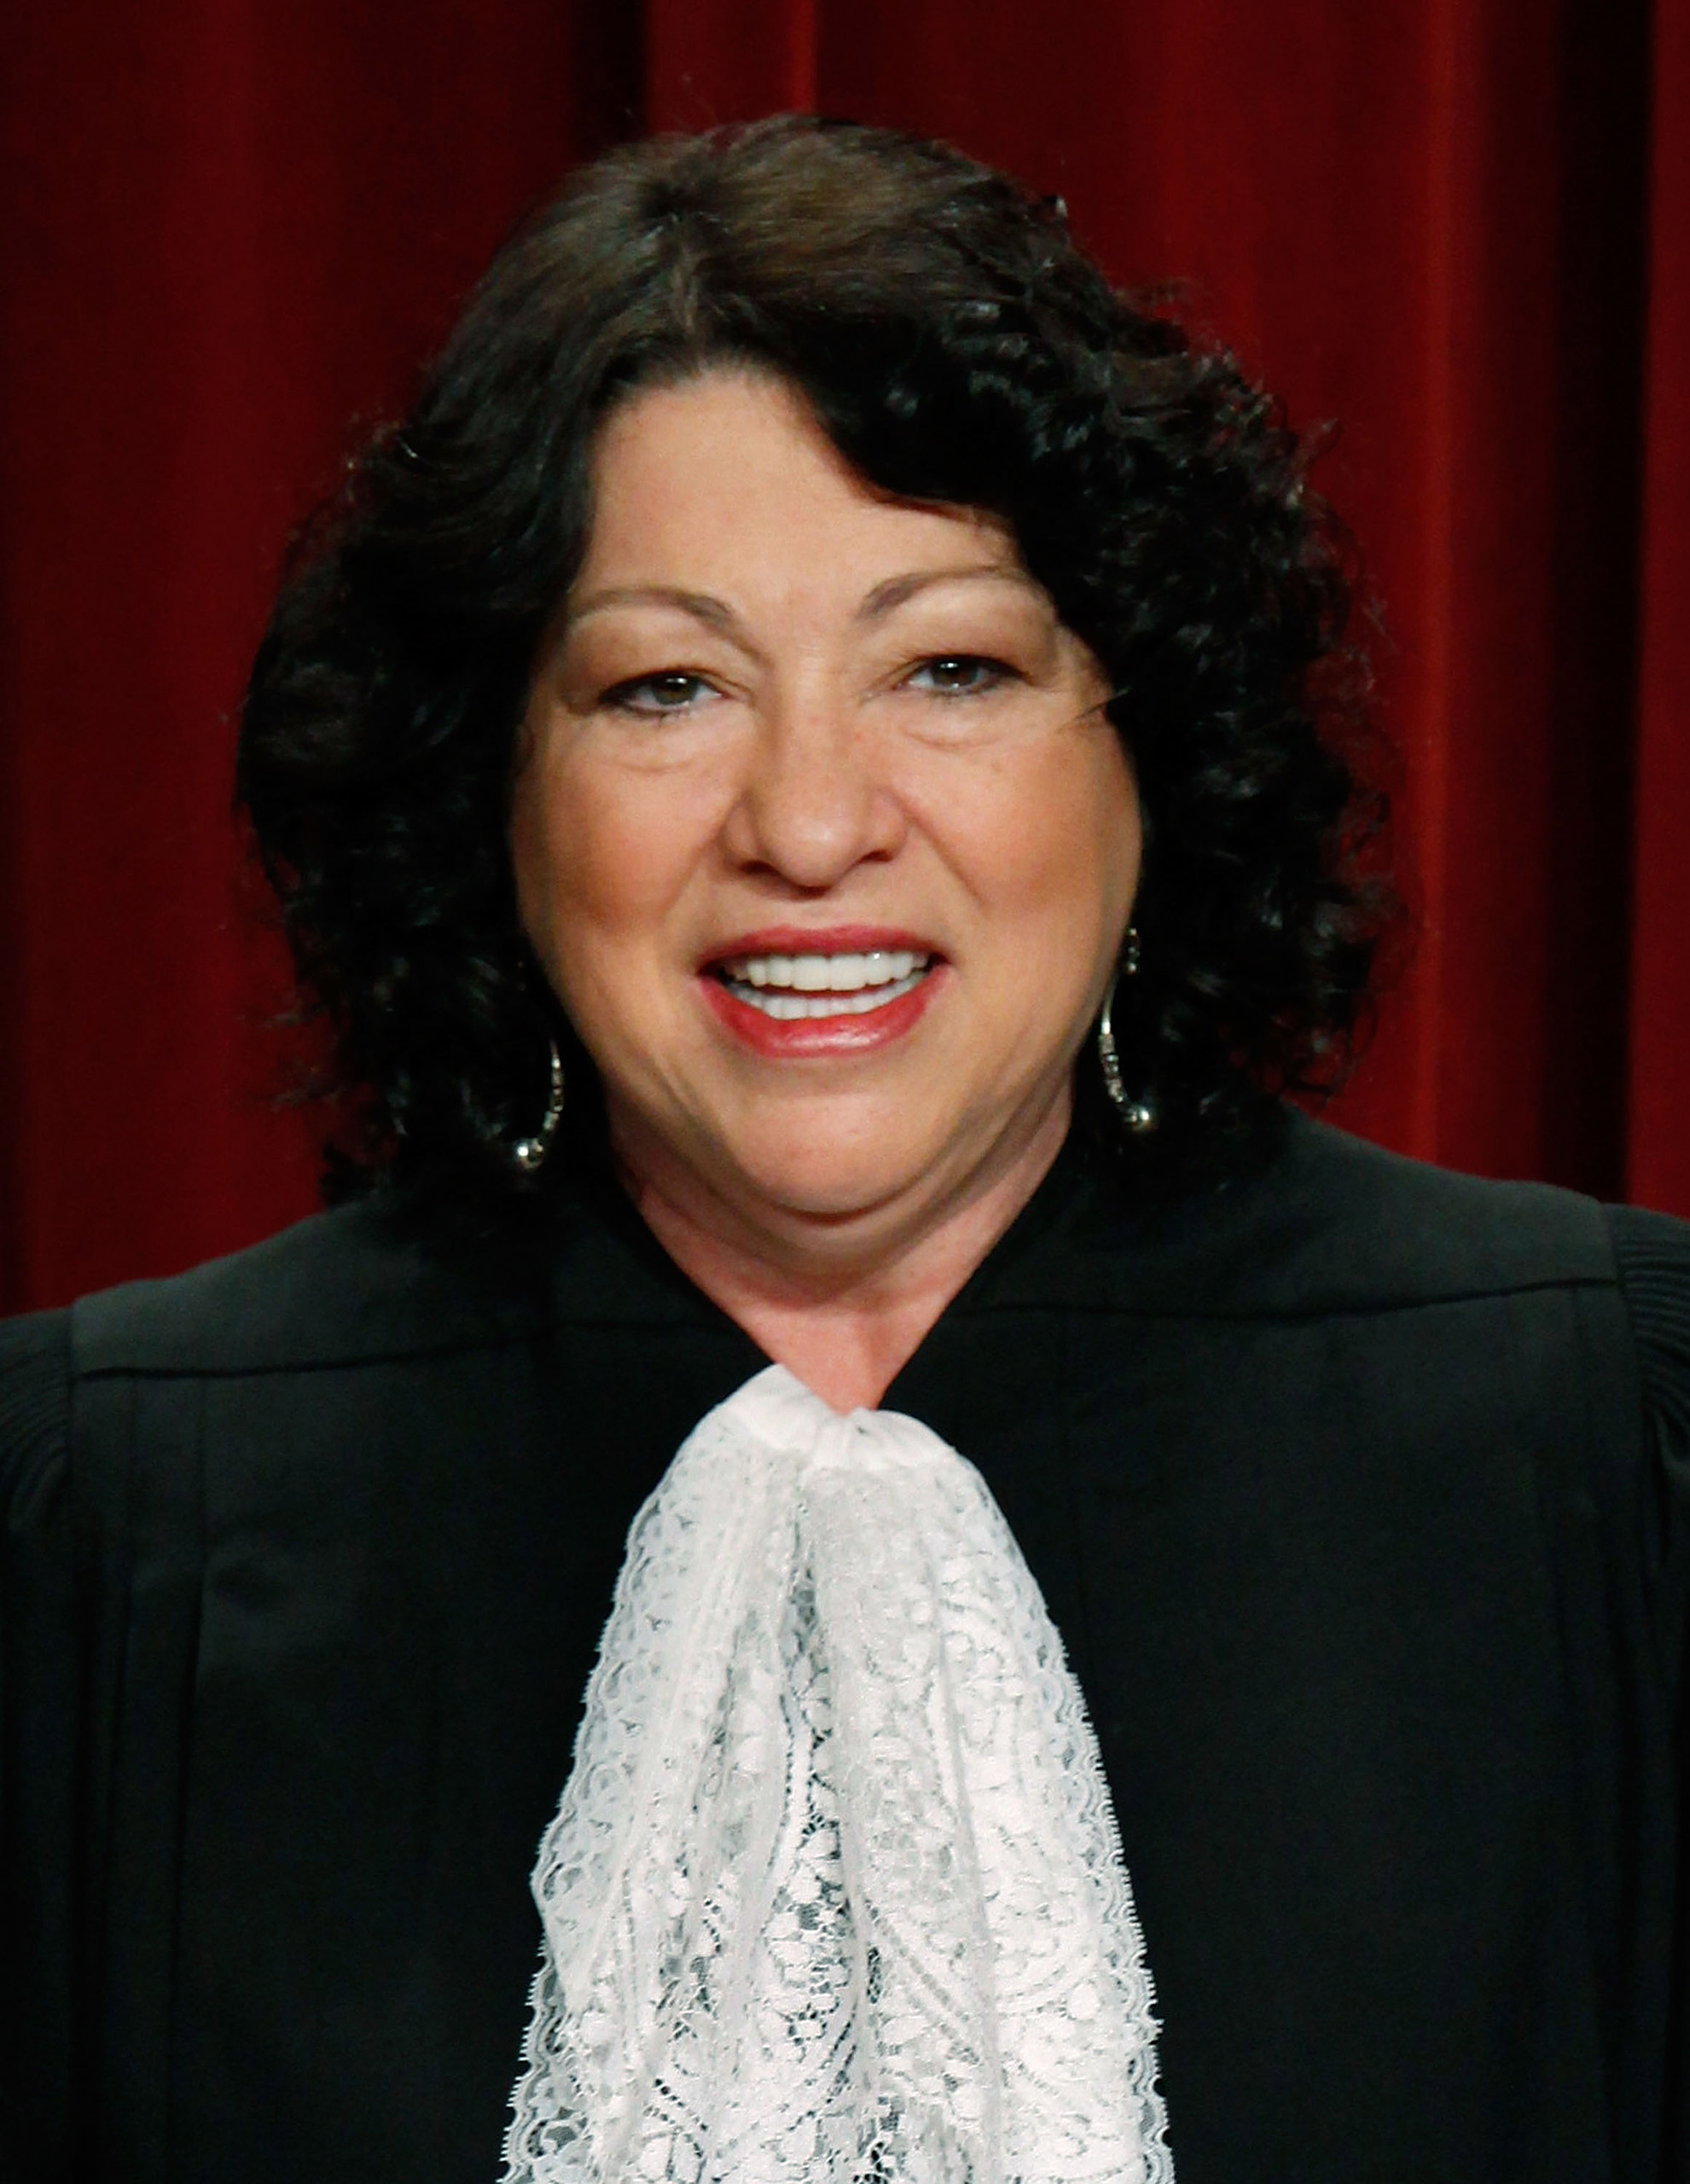 Associate Justice Sonia Sotomayor, poses for a photograph at the Supreme Court building on September 29, 2009 in Washington, DC.